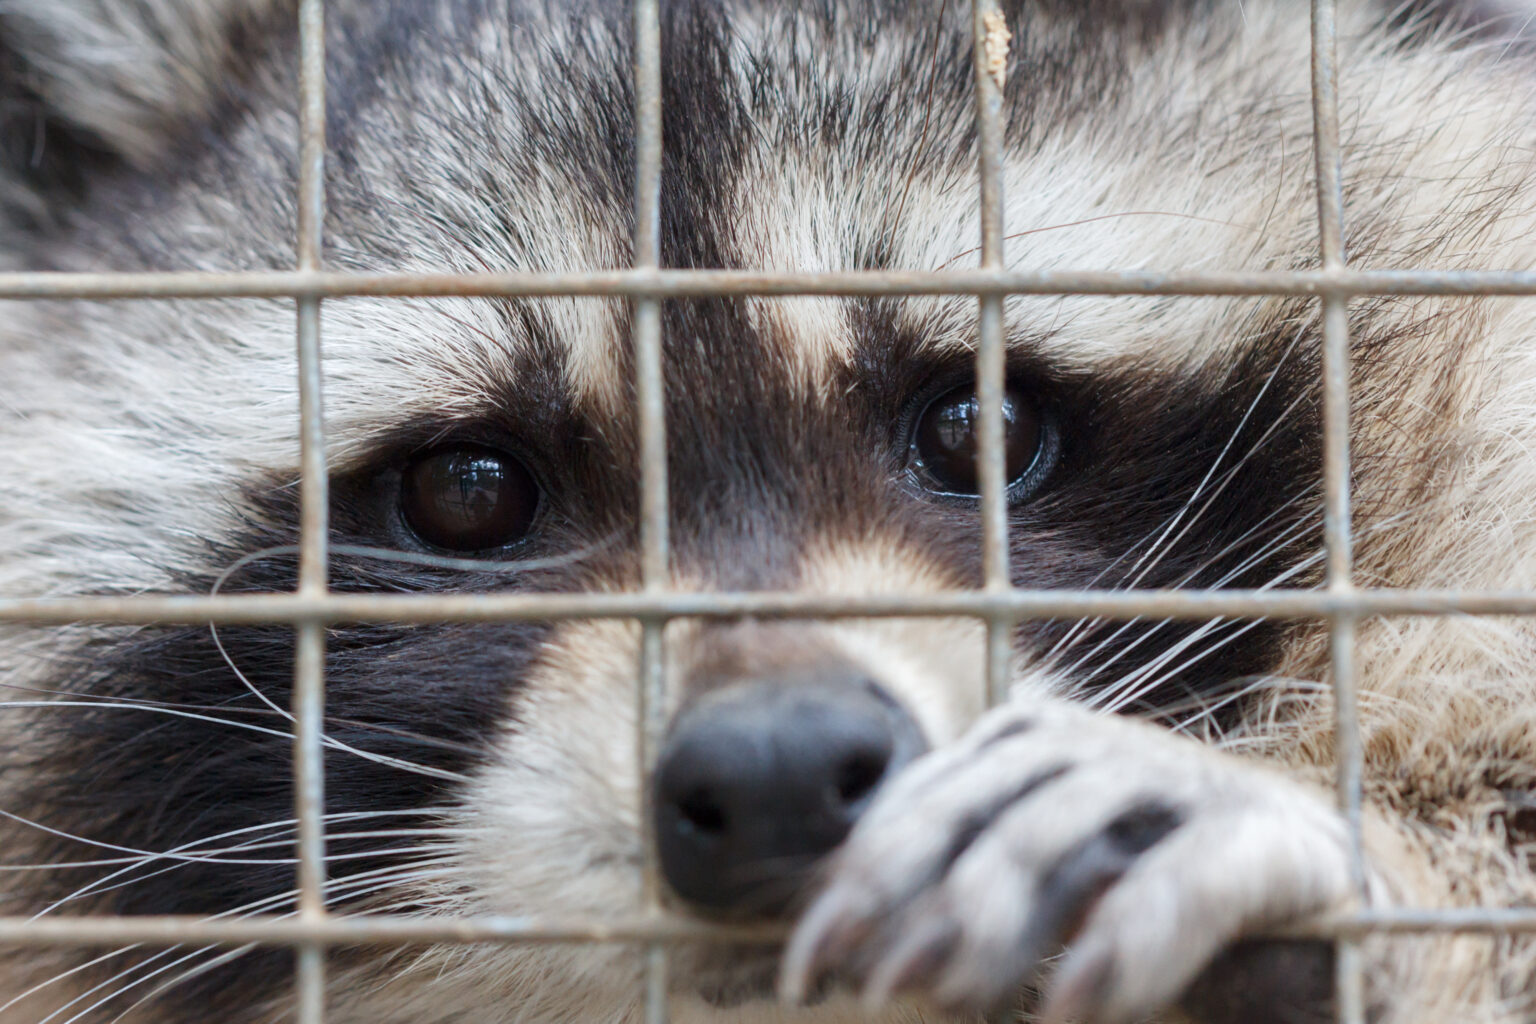 Raccoon in cage